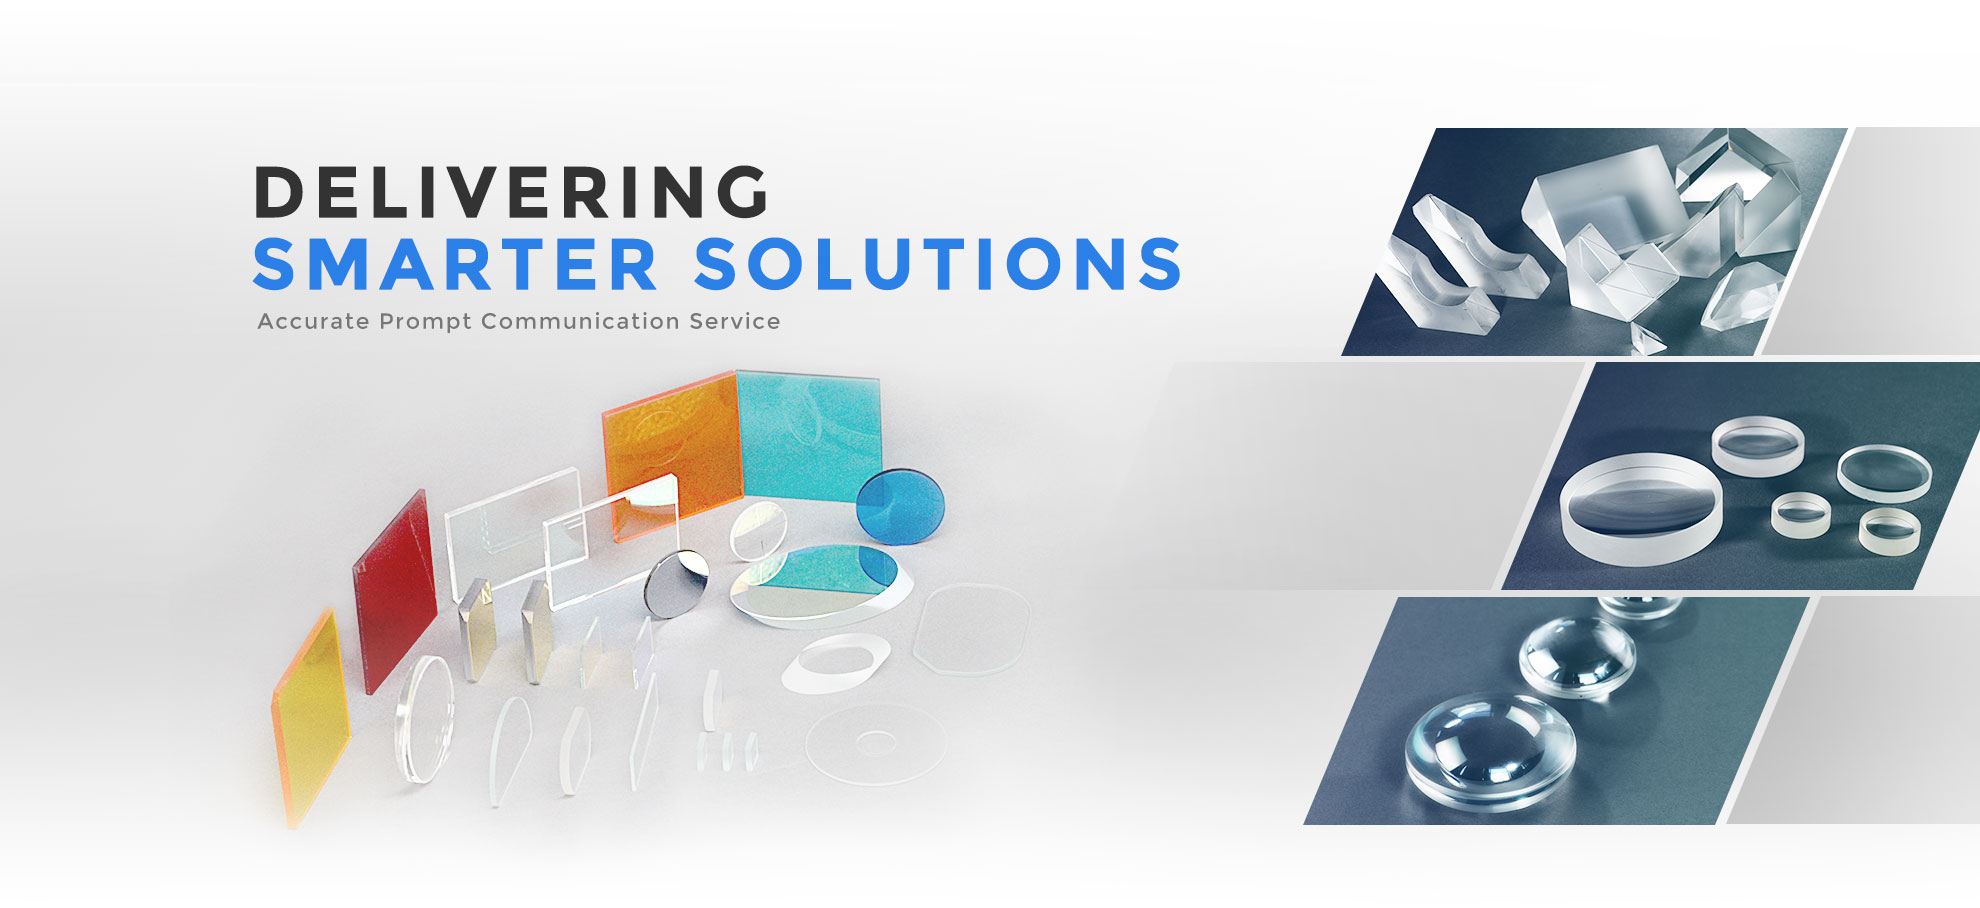 Delivering Smarter Solutions